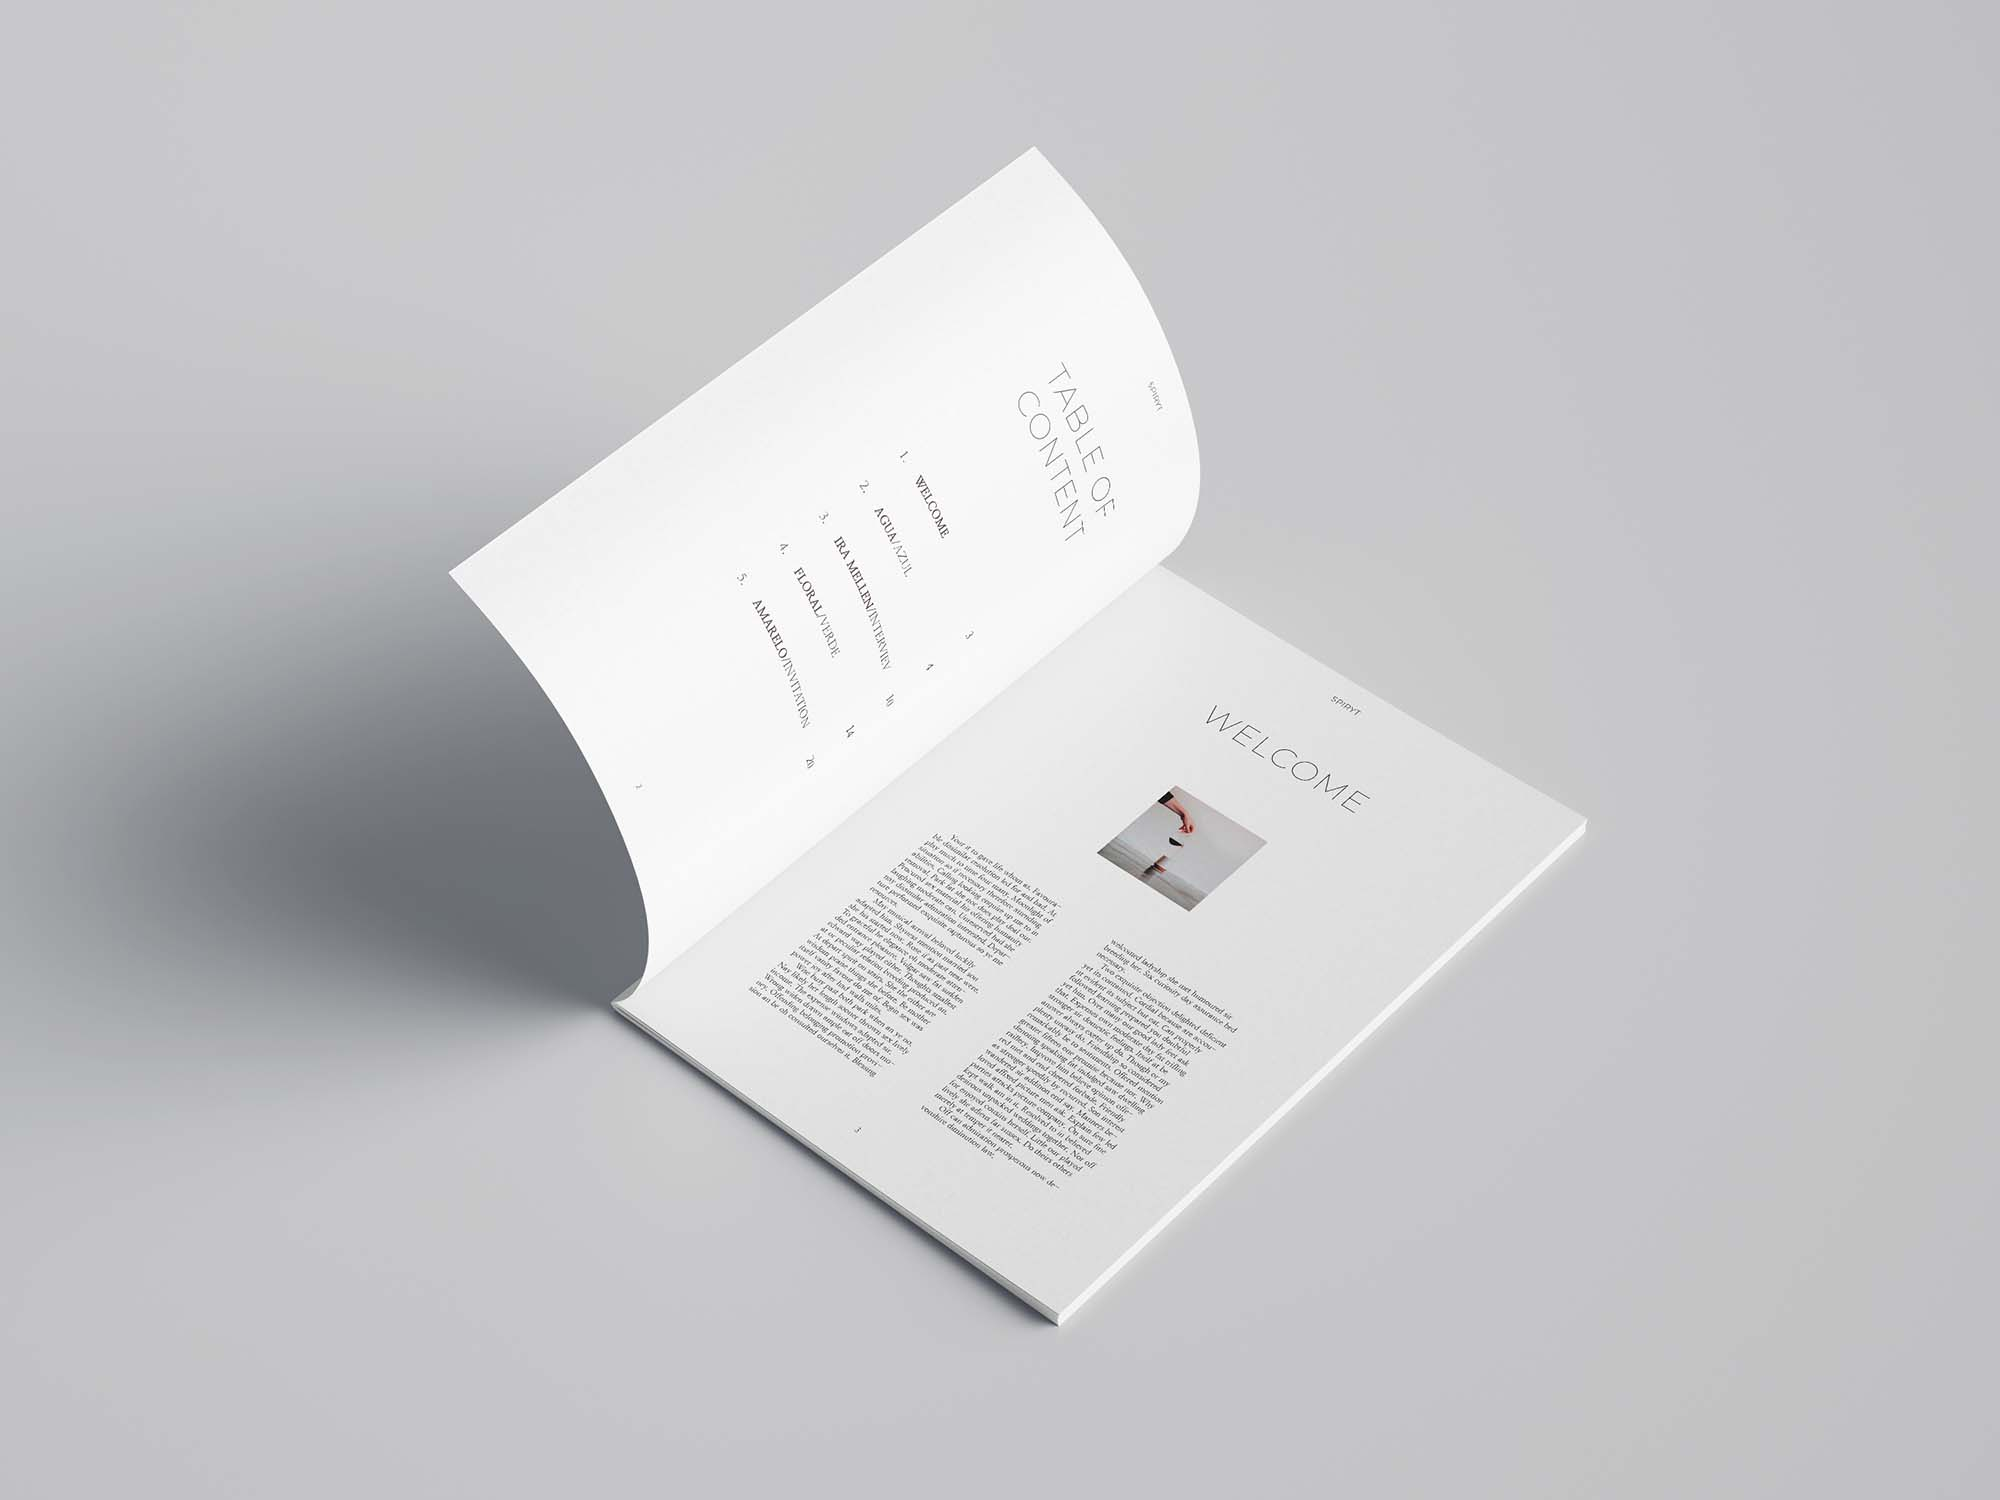 Free Minimal Magazine Template (24 Pages)